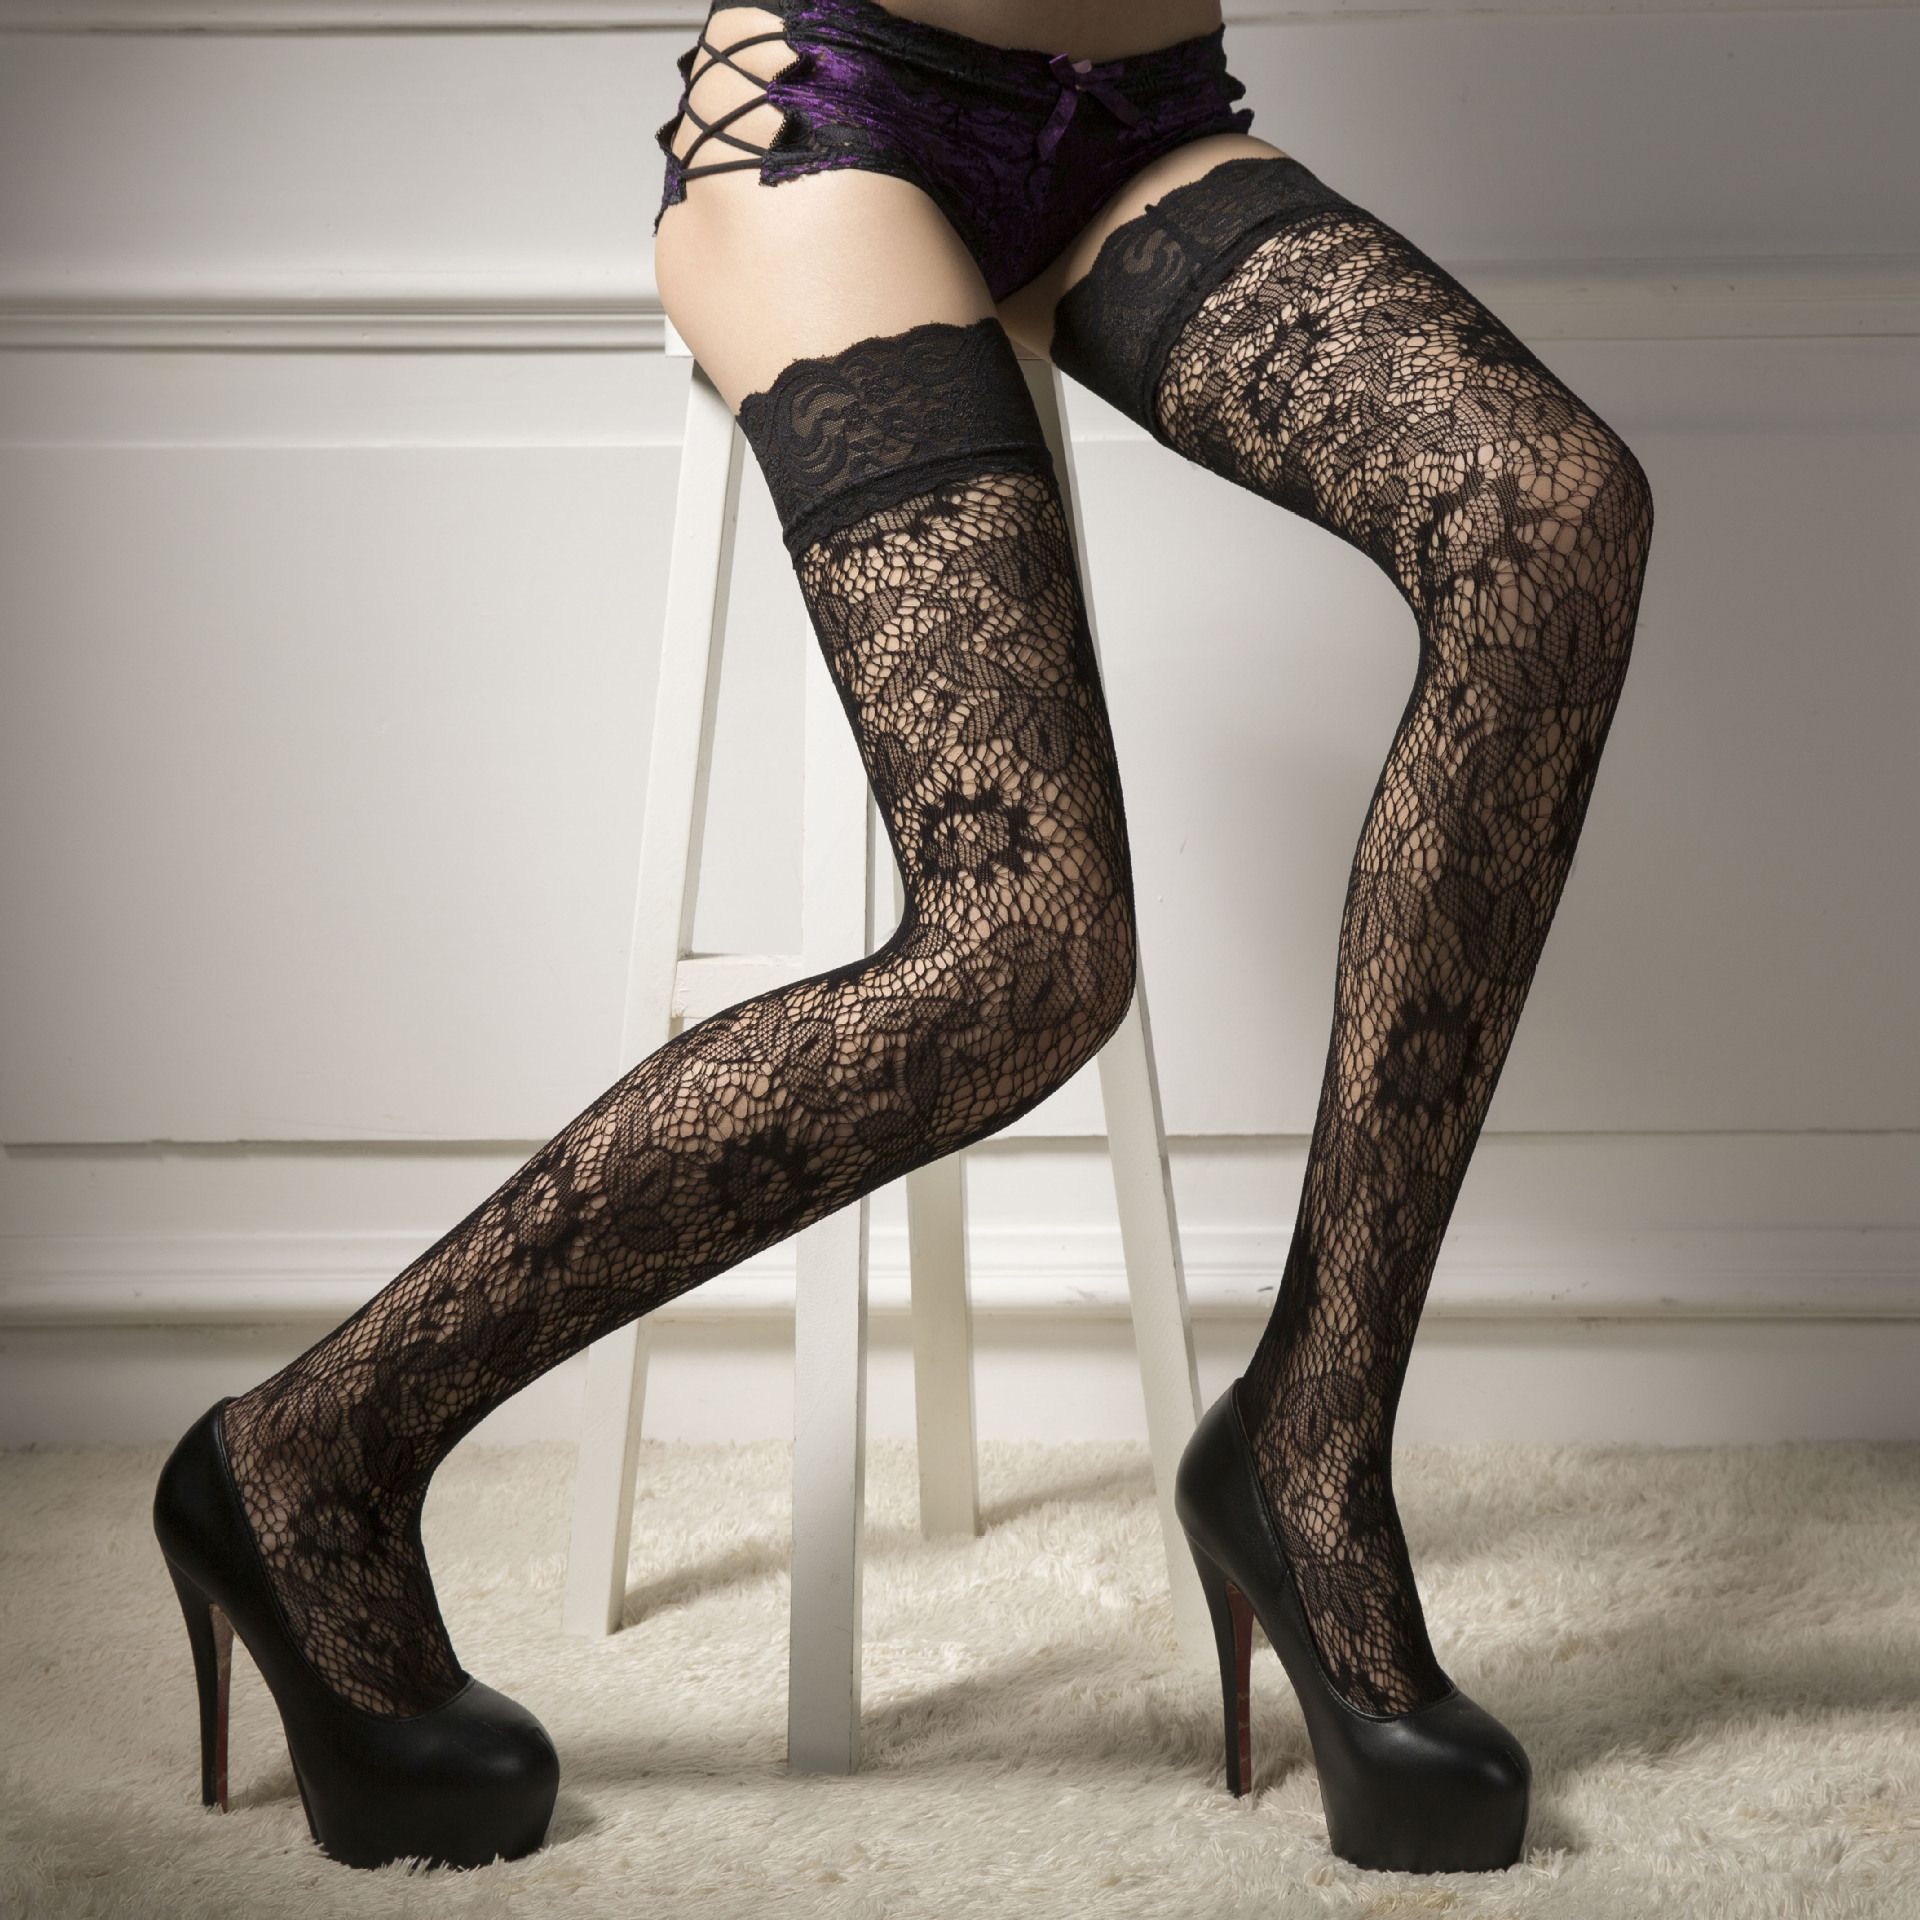 88947ce516c 2017 Sexy Erotic lingerie Leaf Lady Women Sheer Lace Garter Stay Up ...